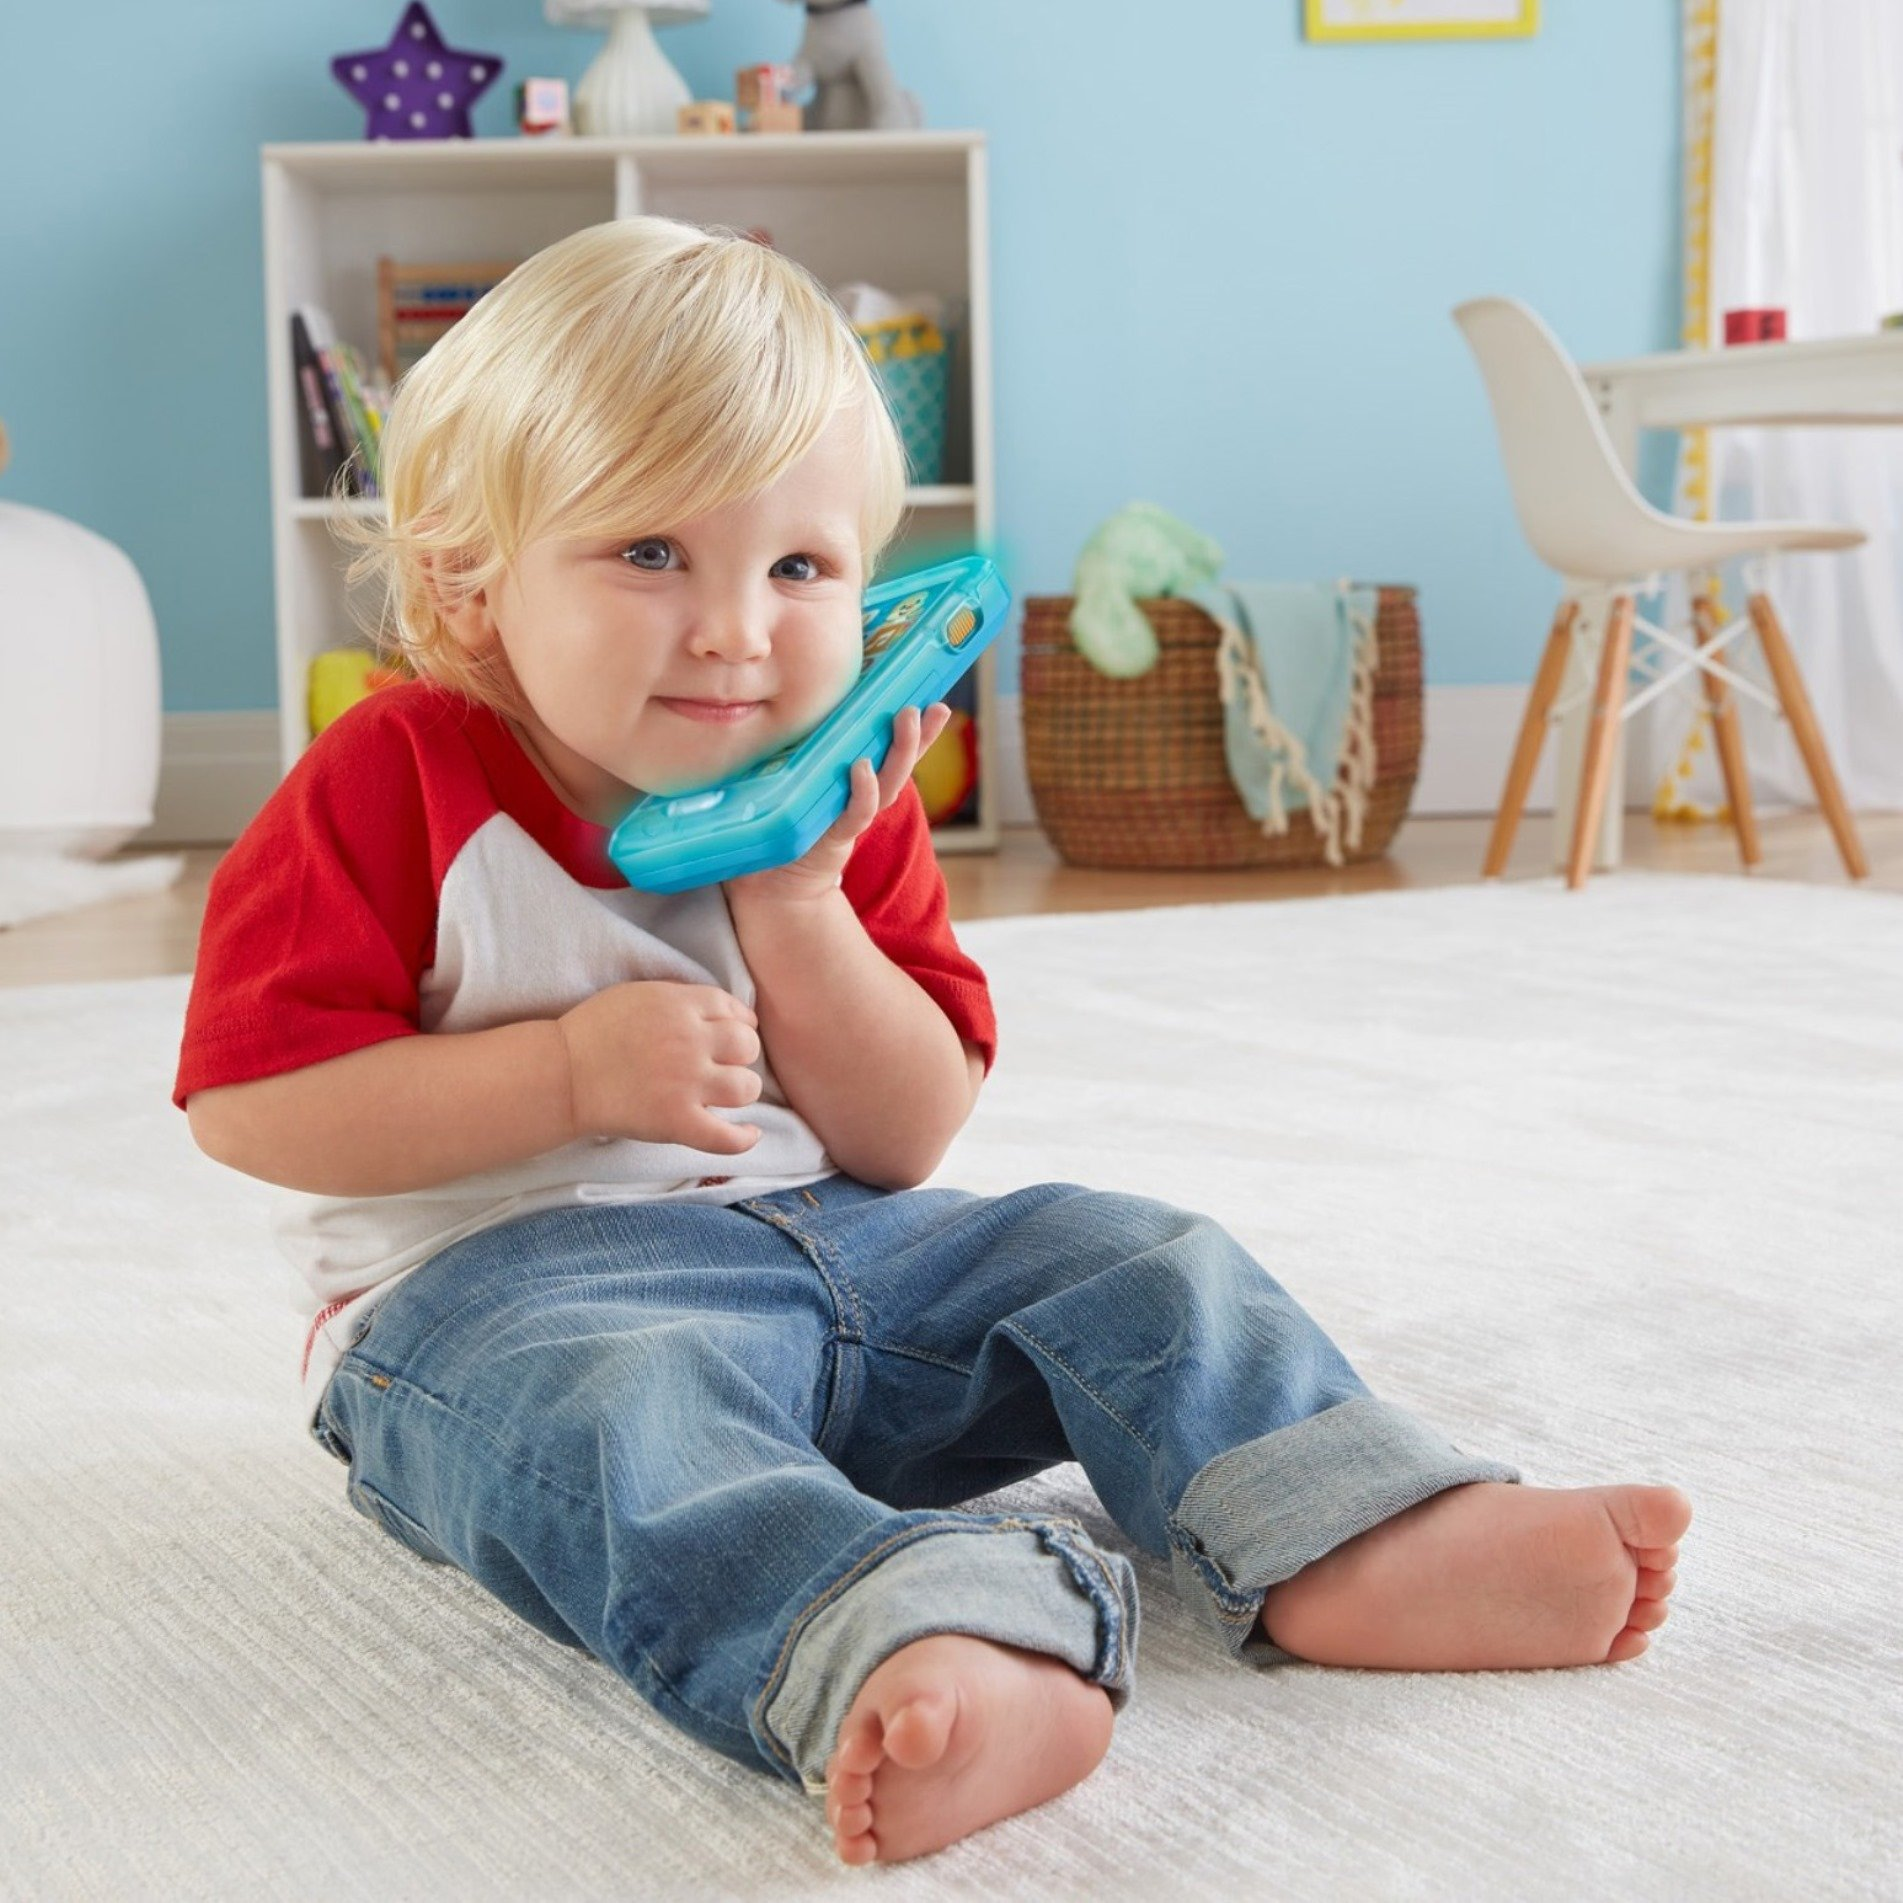 Fisher-Price Laugh & Learn Leave A Message Smart Phone, Puppy by Fisher-Price (Image #6)